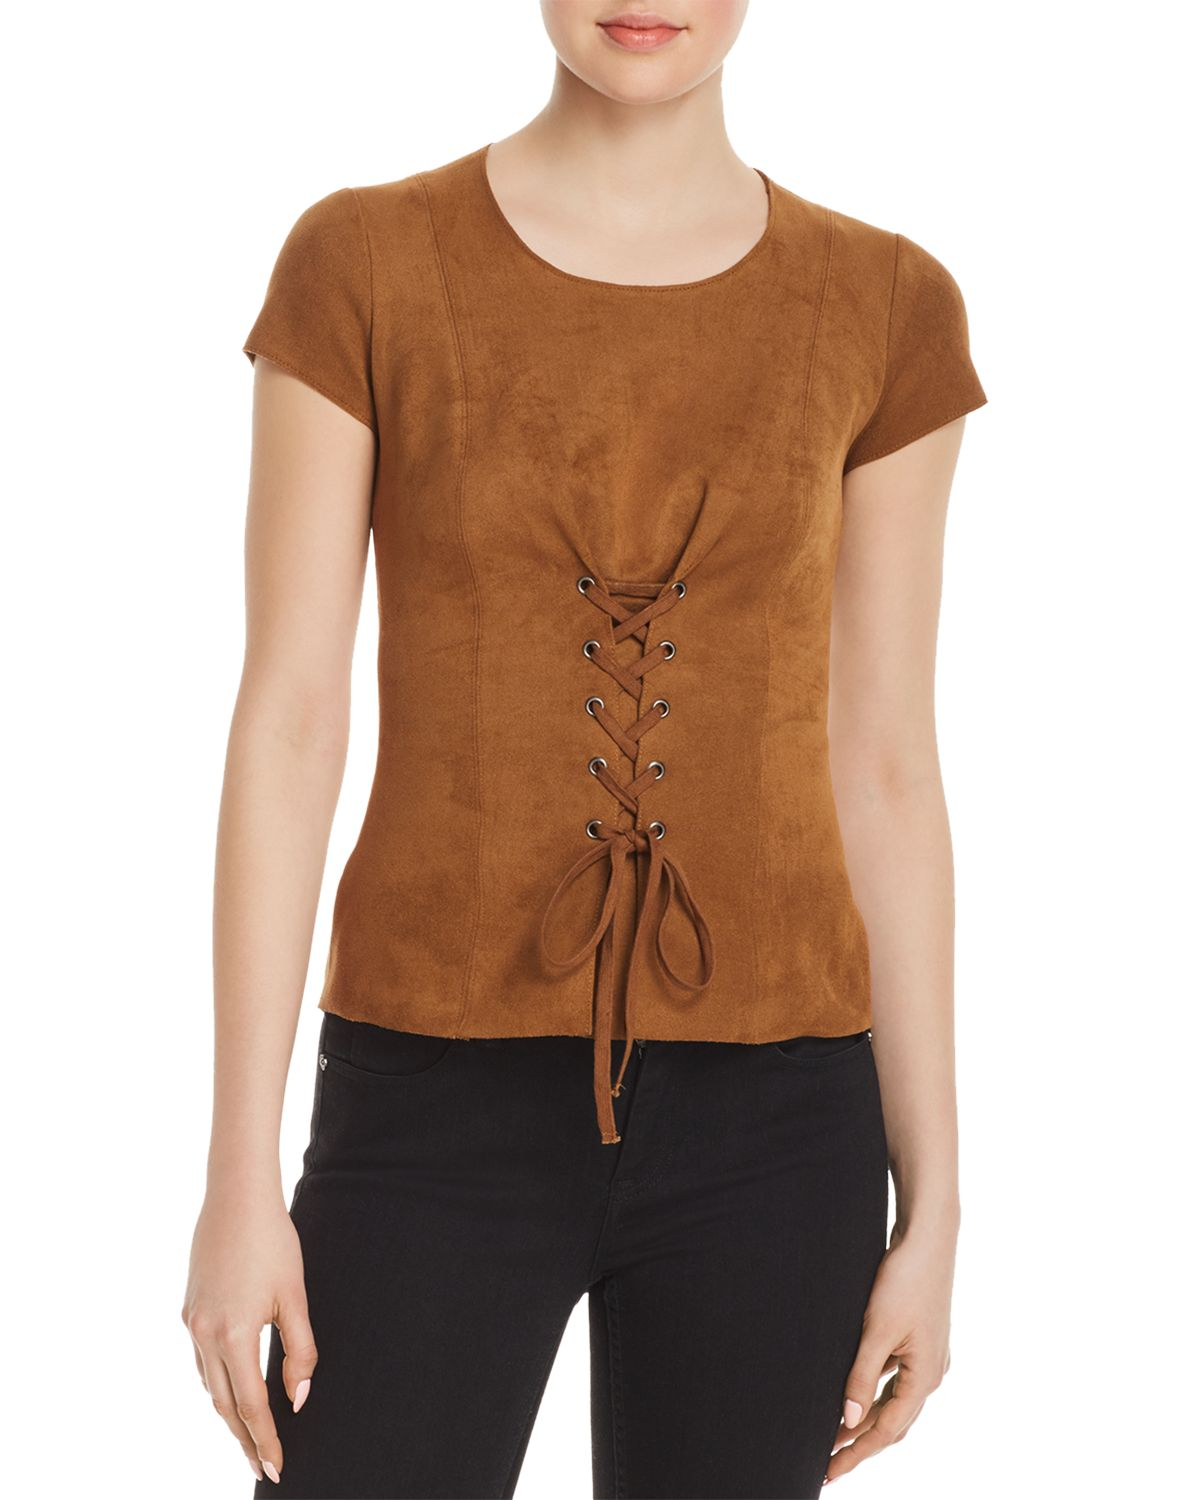 Ricochet Faux Suede Lace Up Top by Bailey 44